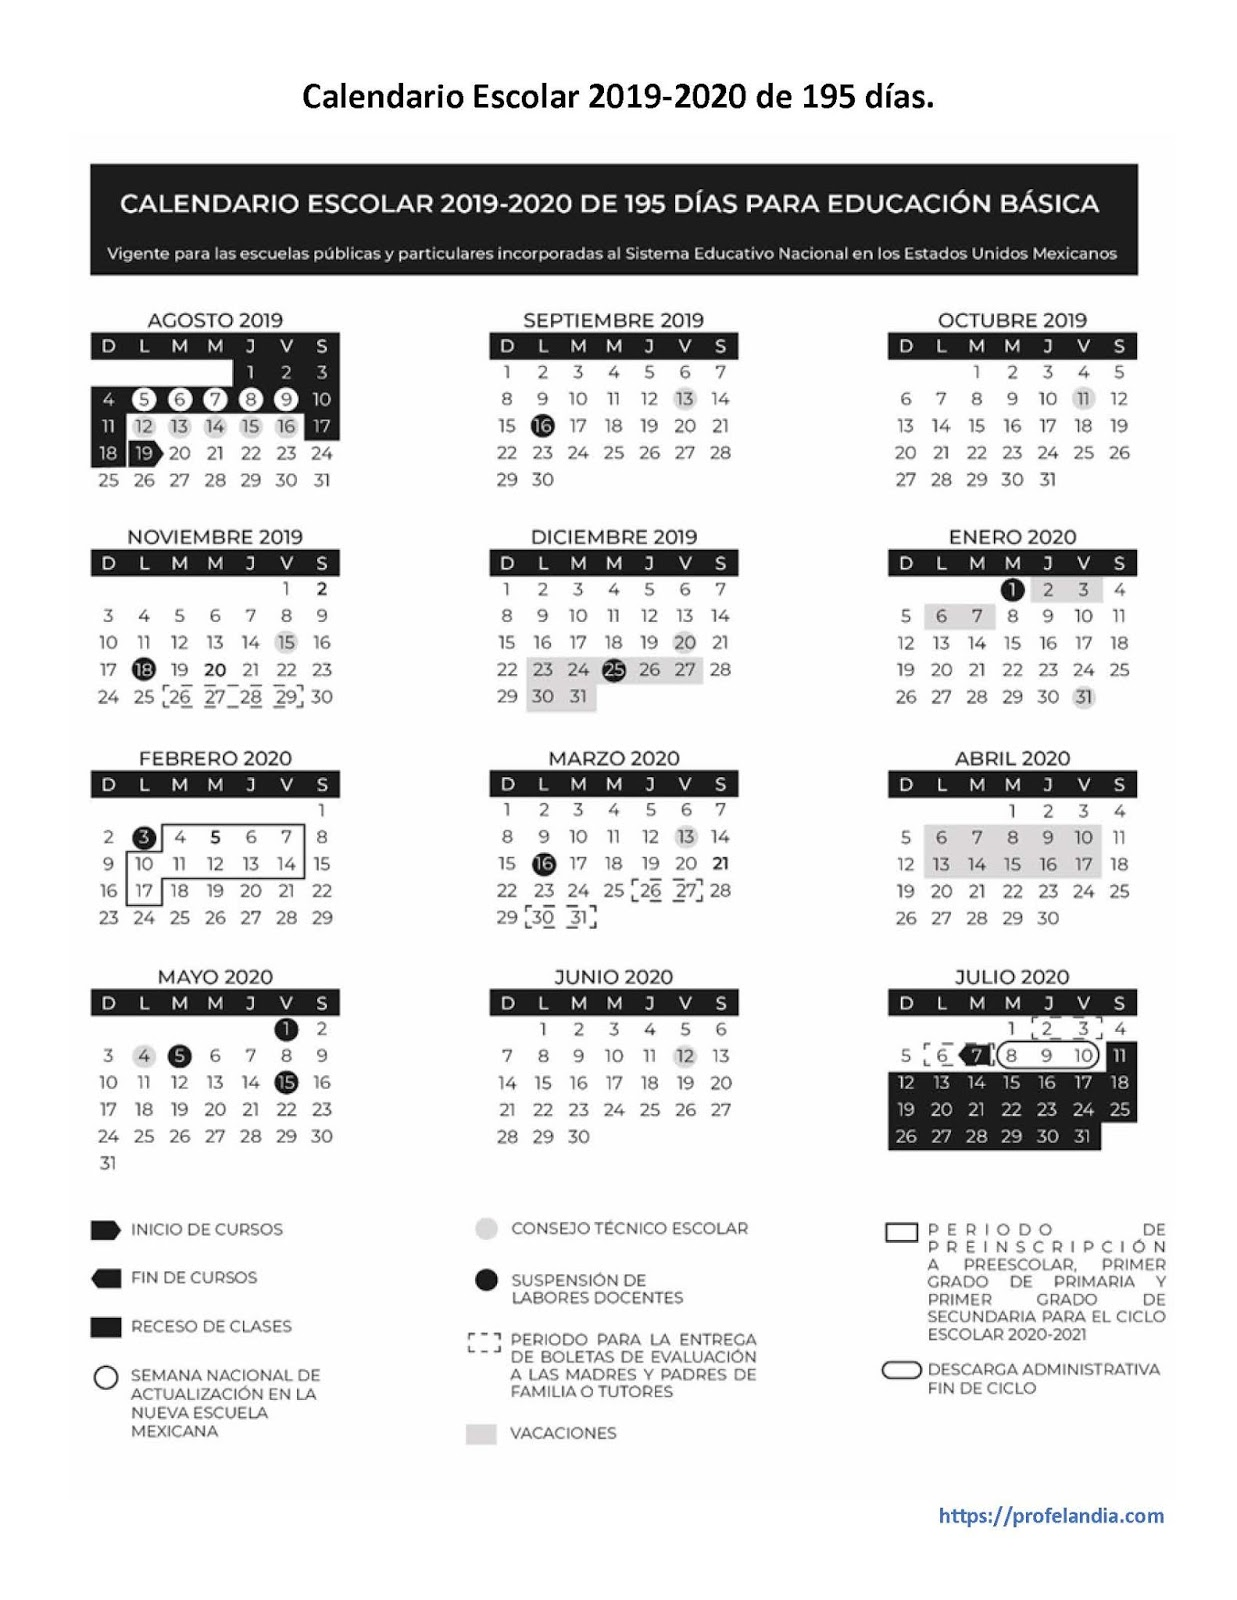 Calendario Agosto 2019 Julio 2020.Calendario Escolar 2019 2020 Alexduve